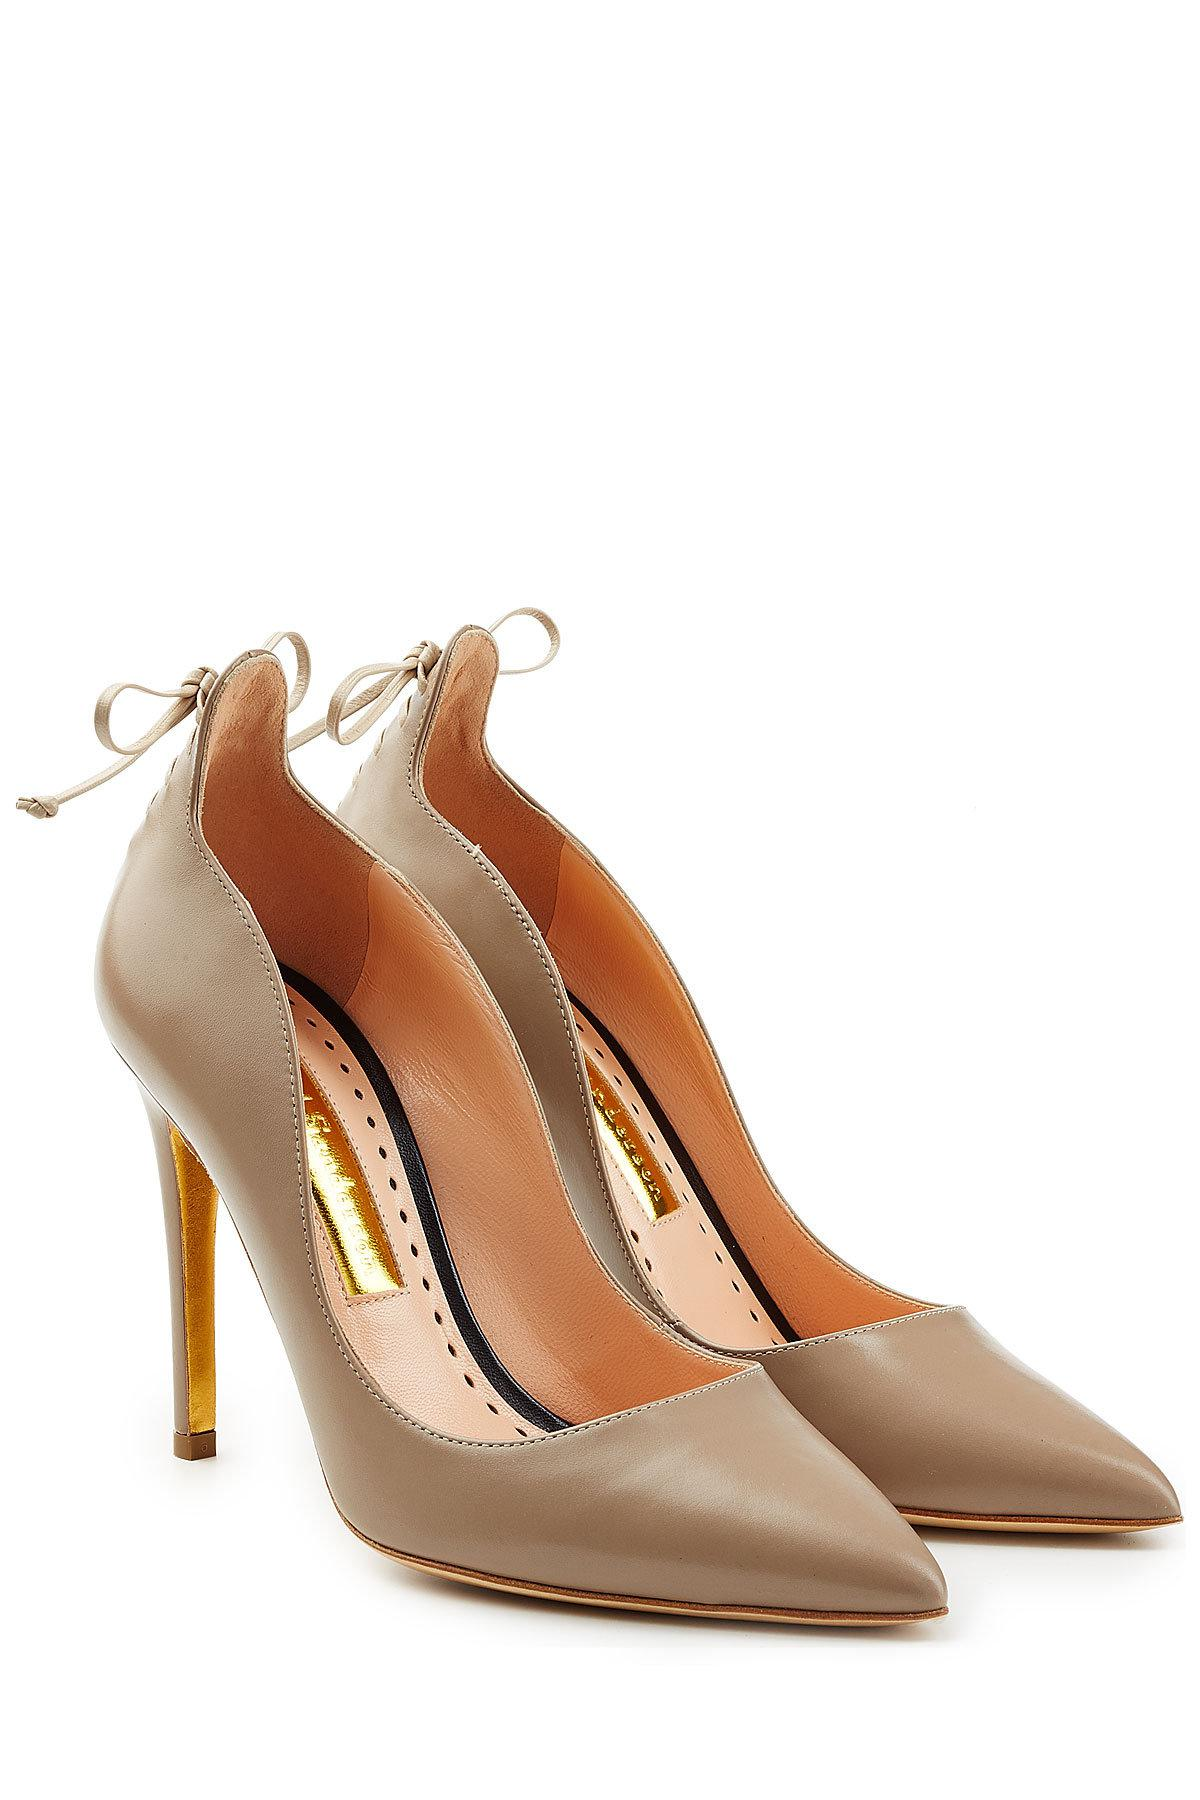 Rupert Sanderson Lace-Up d'Orsay Pumps with credit card iJ7Z7XI